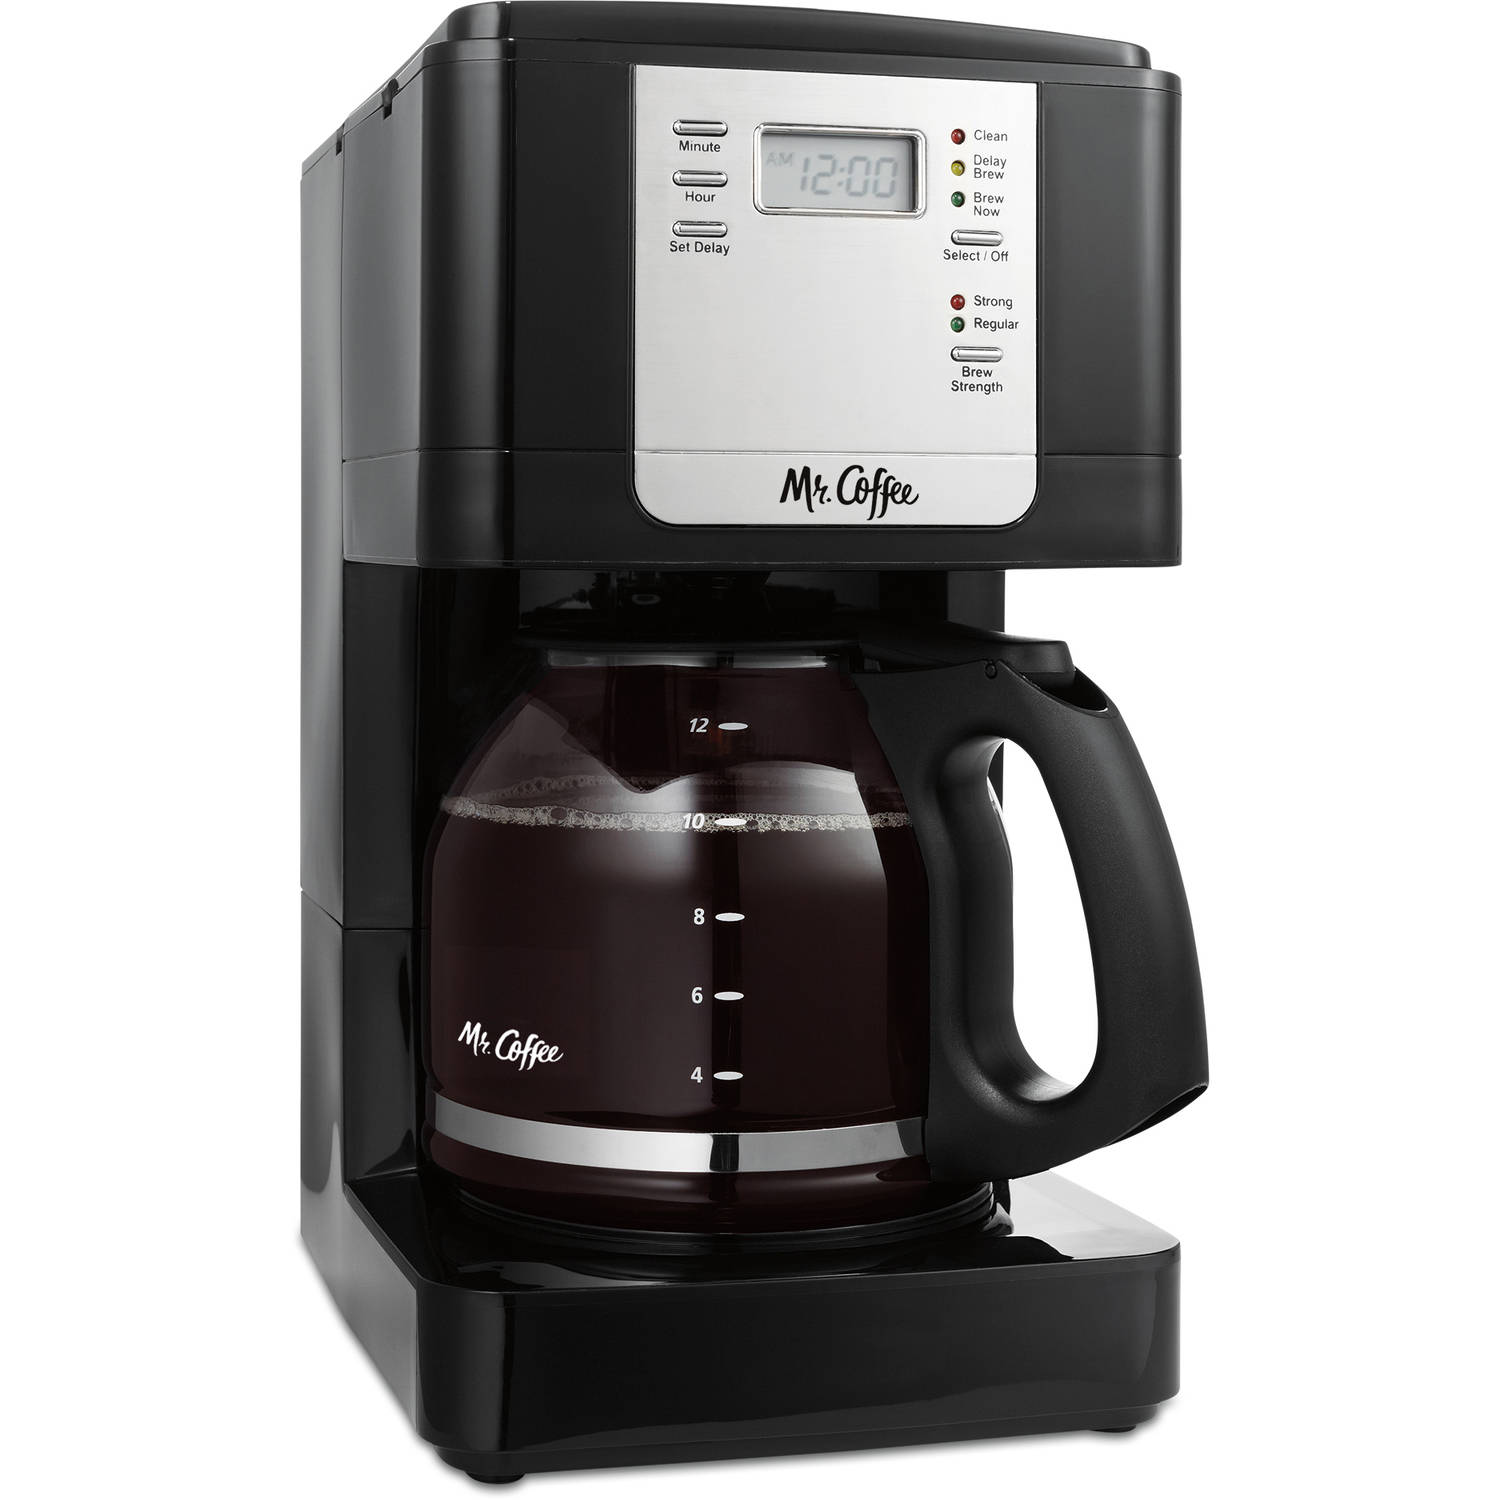 Mr. Coffee 12-Cup Programmable Coffee Maker, JWX23WM